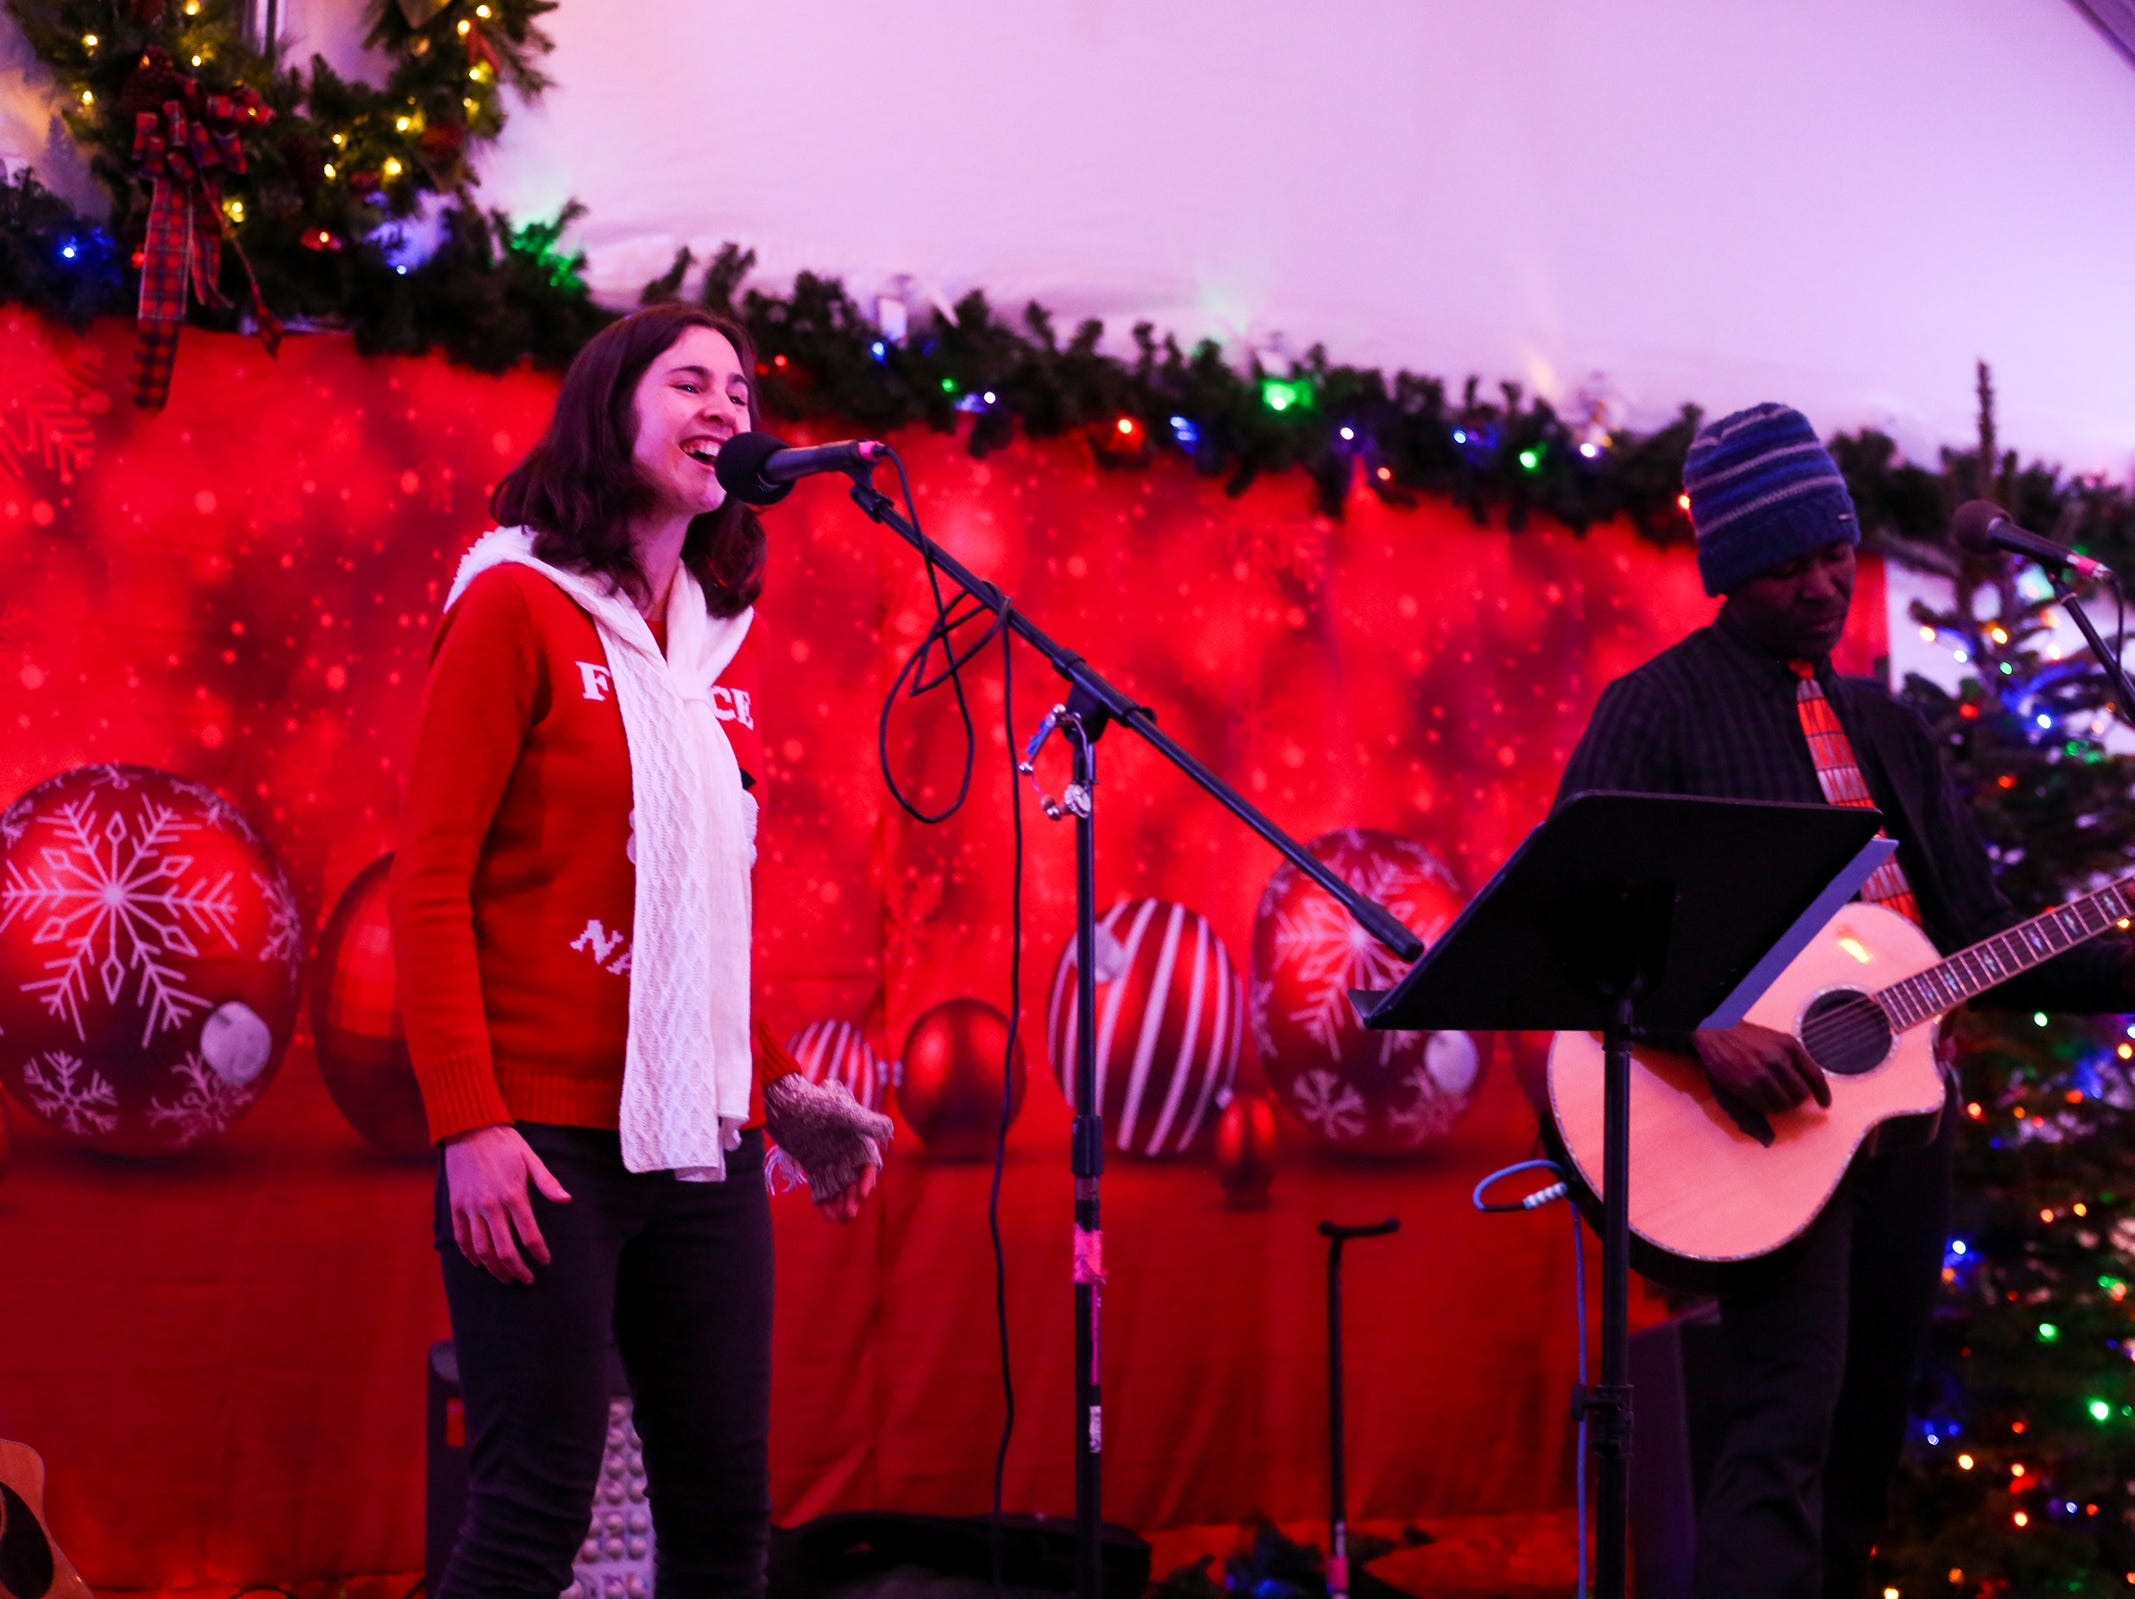 Christmas in the Garden is set up at the Oregon Garden Resort on Wednesday, Nov. 28, 2018, in Silverton. The winter wonderland features live music.